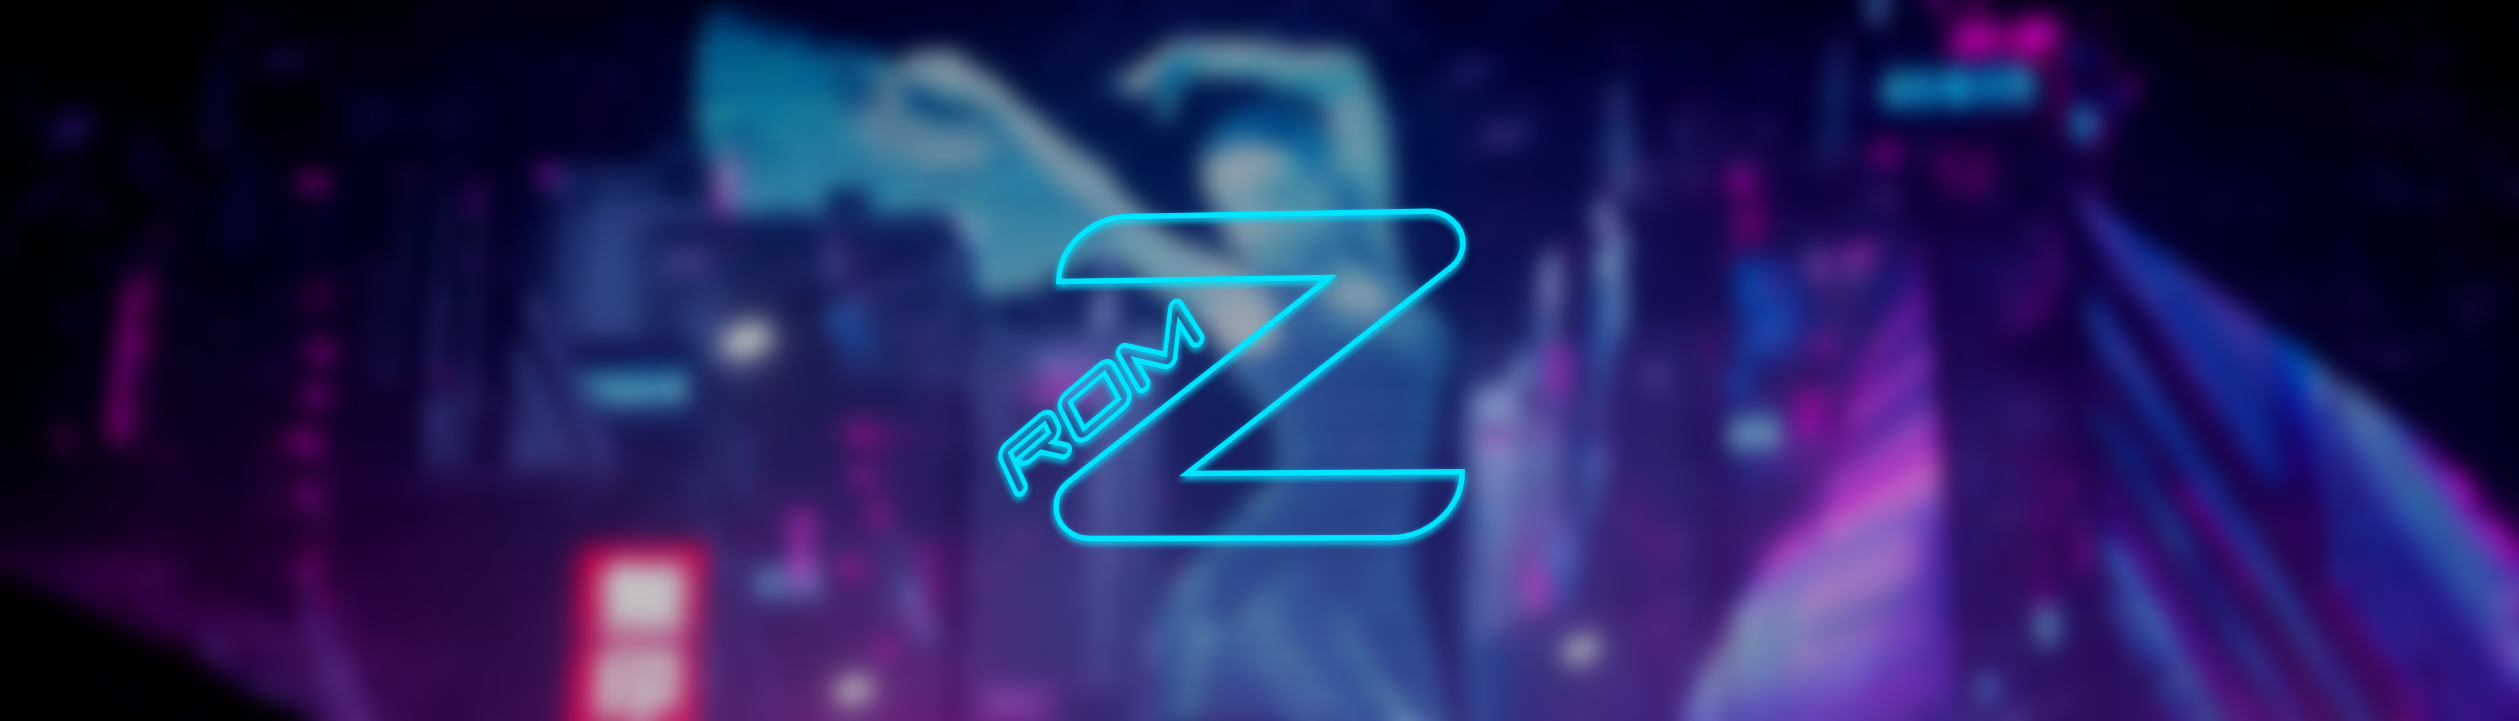 ZROM - Banner intro....png